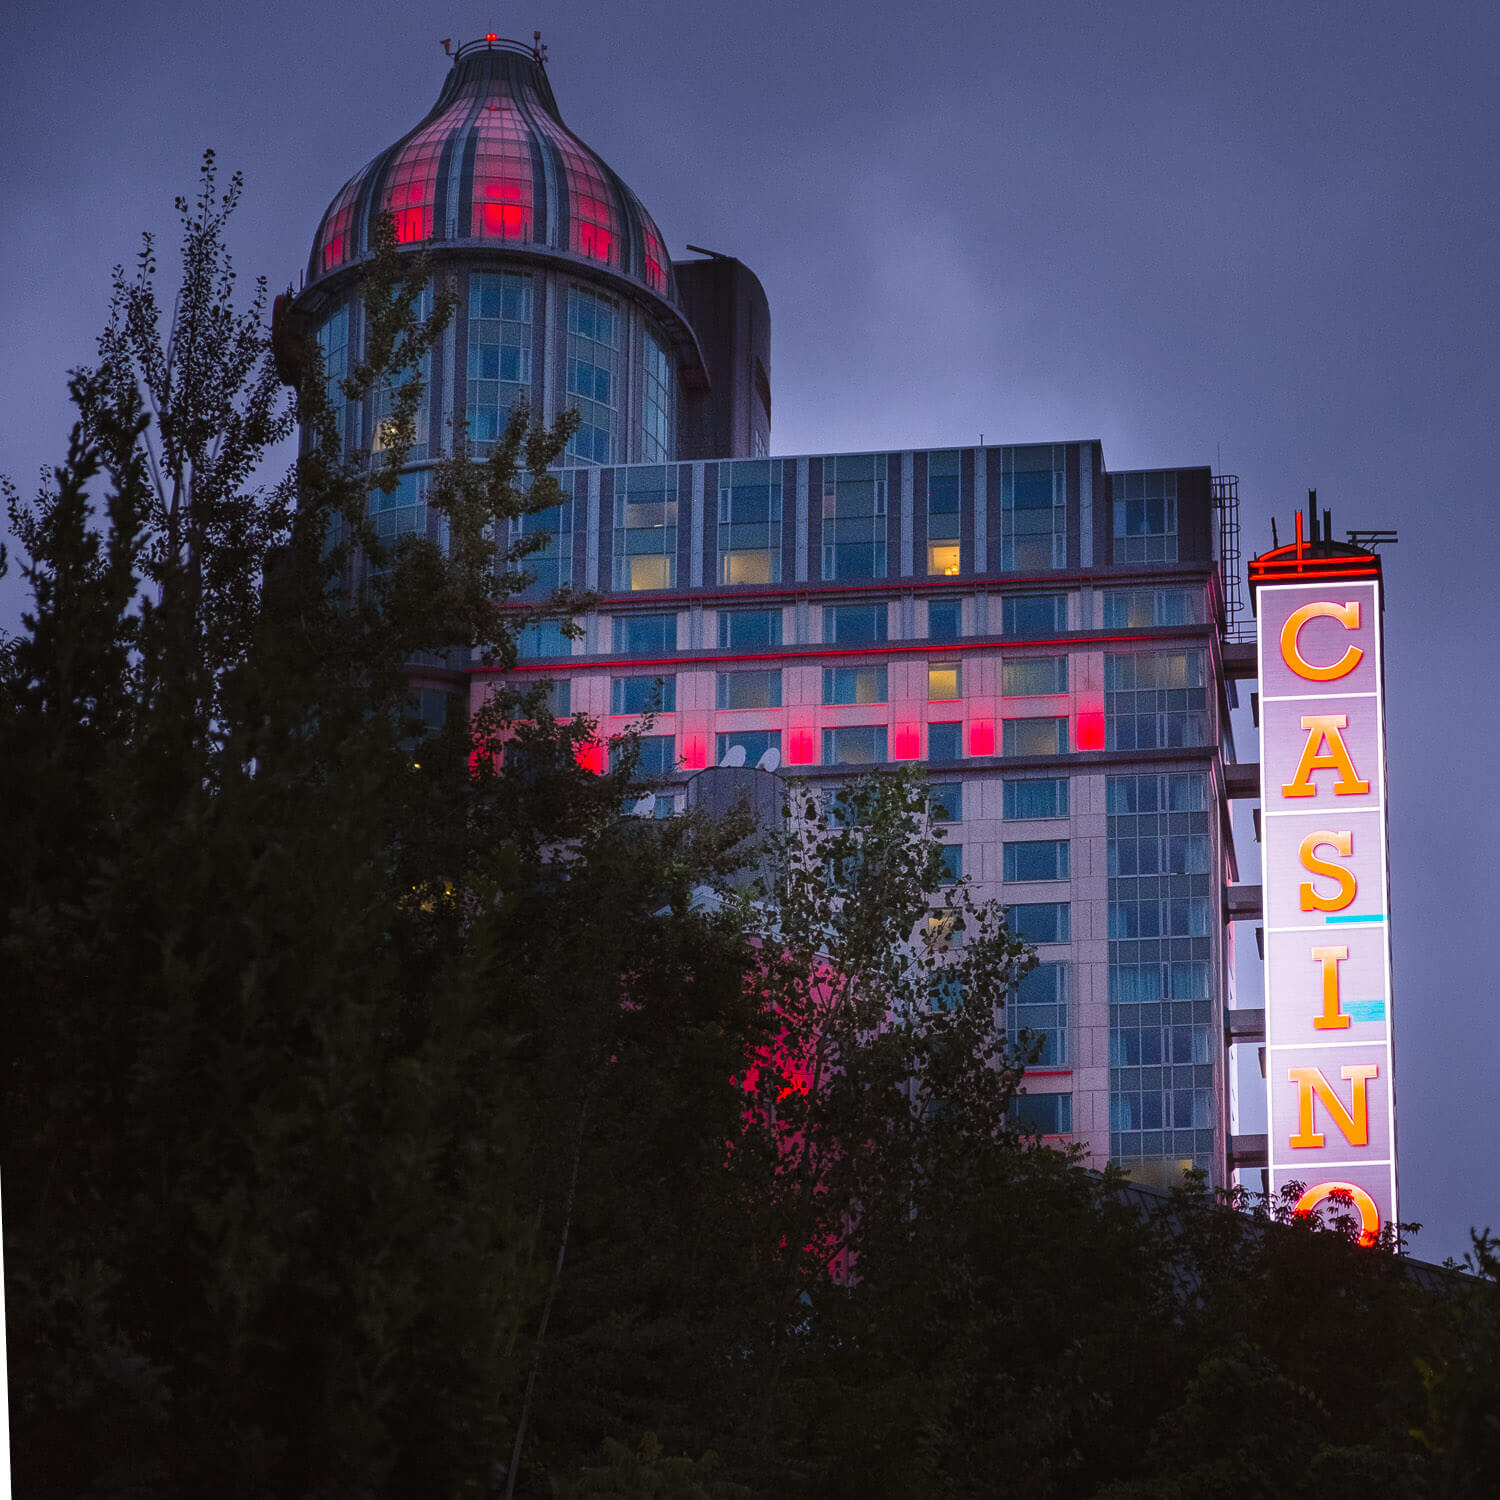 The Fallsview Casino at night